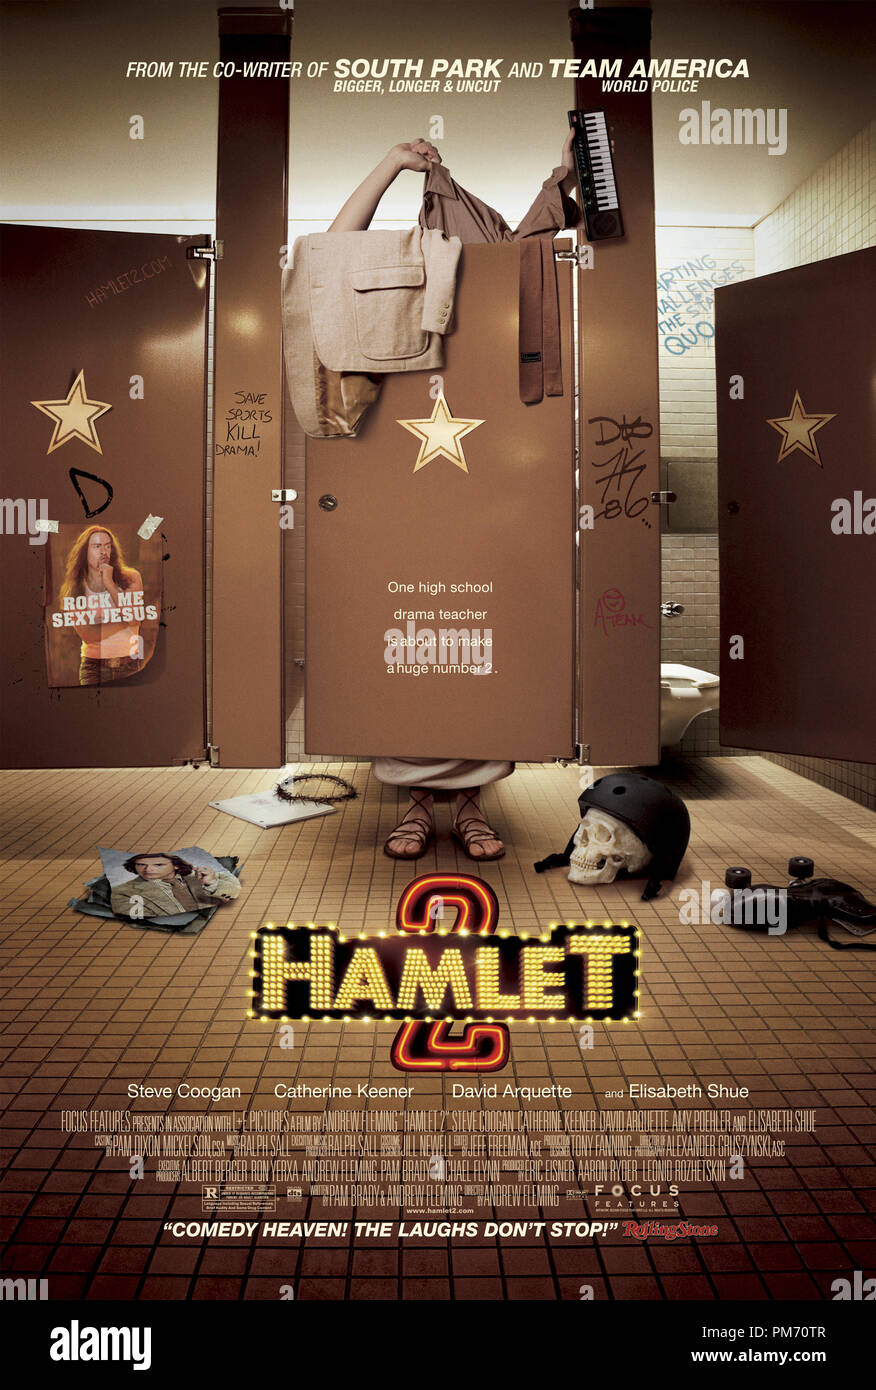 'Hamlet 2' Poster © 2008 Focus Features  File Reference # 30755082THA  For Editorial Use Only -  All Rights Reserved - Stock Image